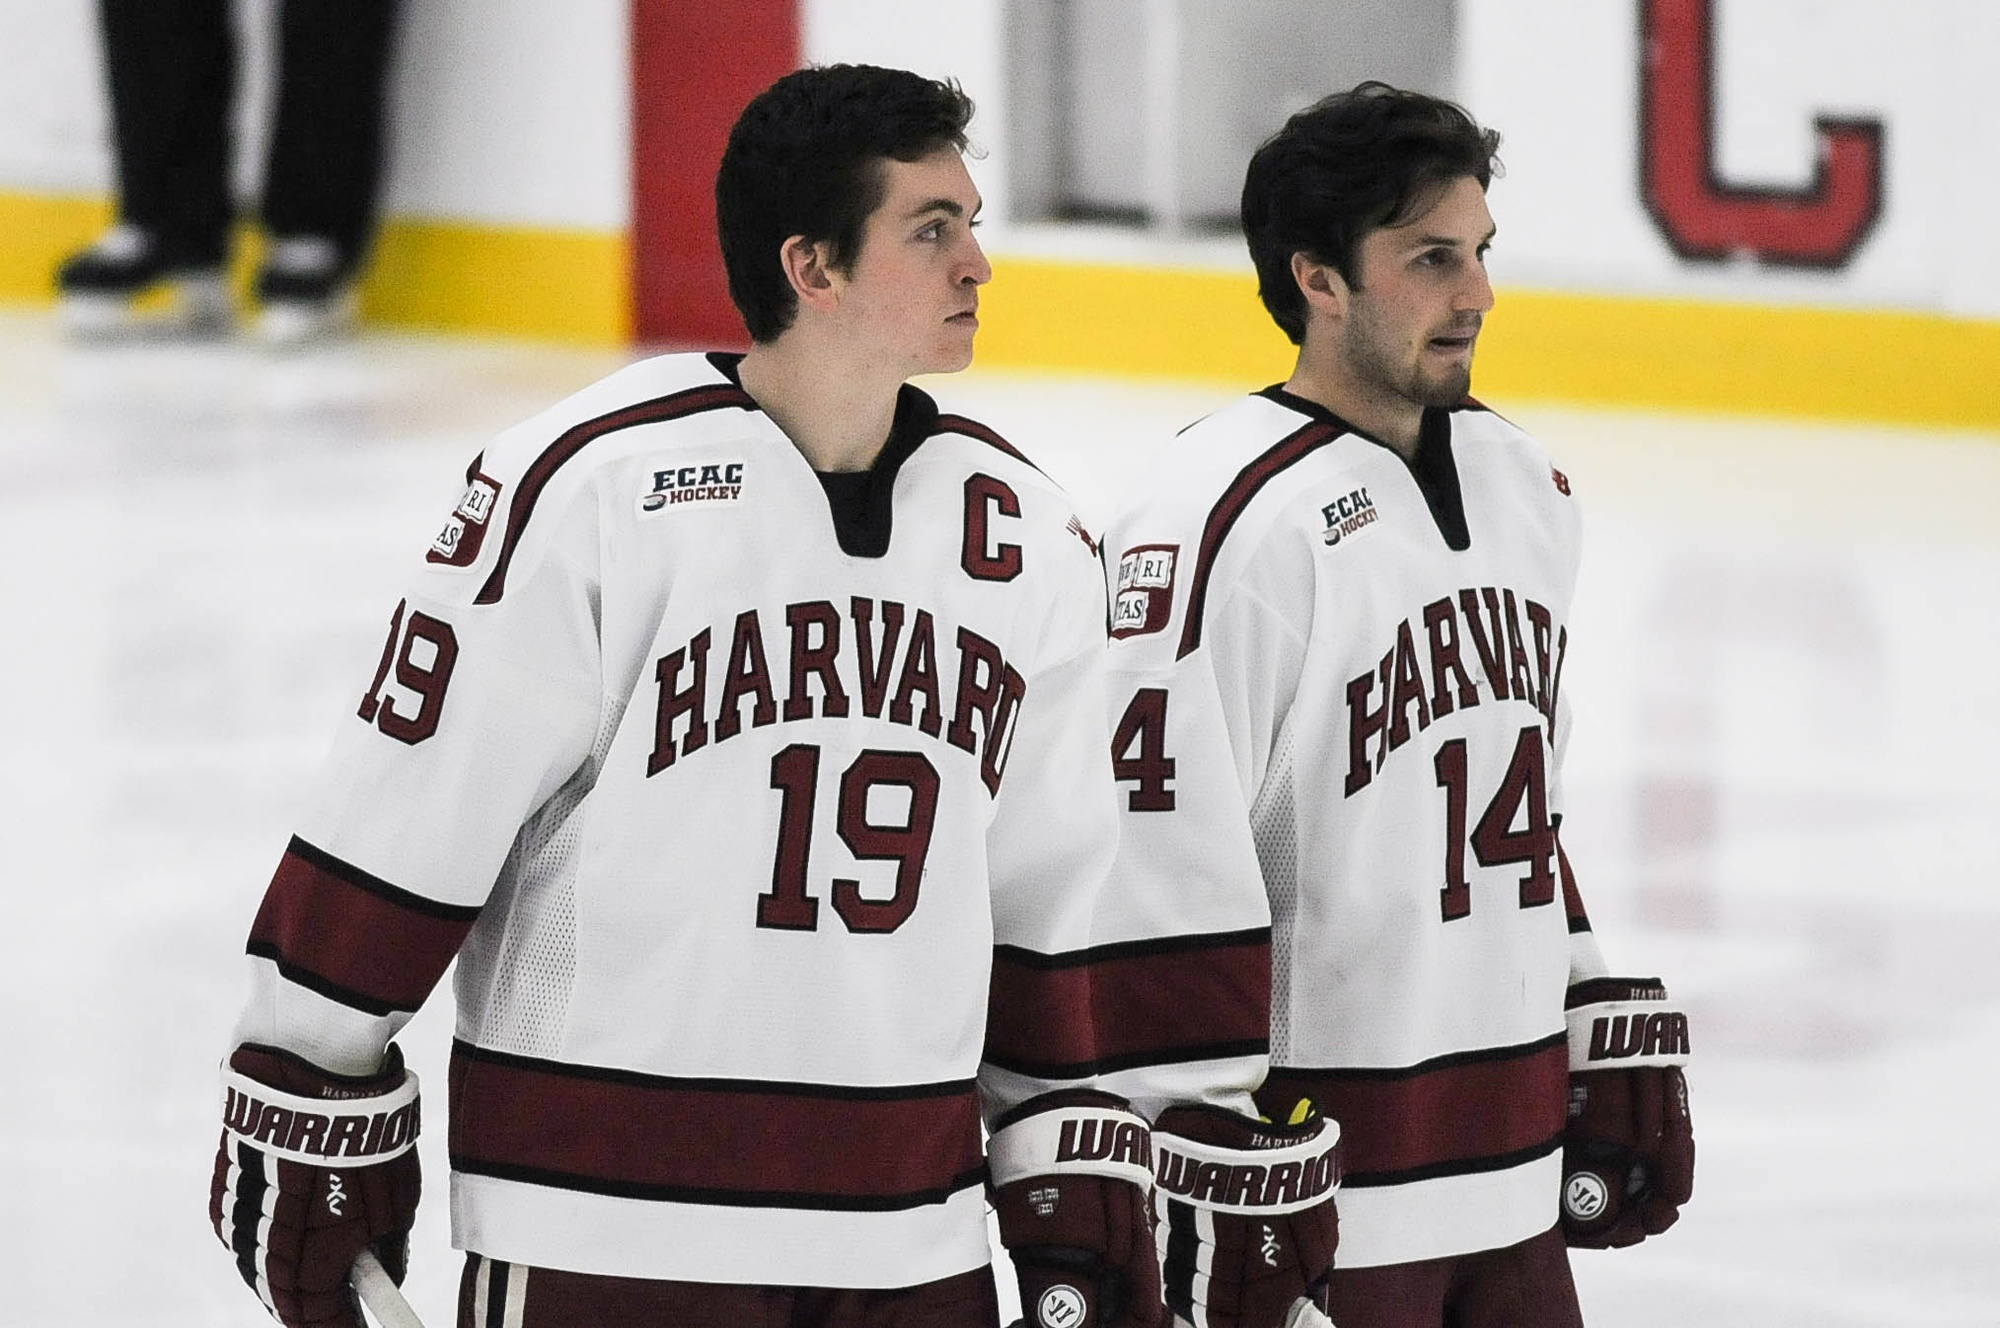 Jimmy Vesey '16 (left) won the Hobey Baker Award during his senior campaign at Harvard.